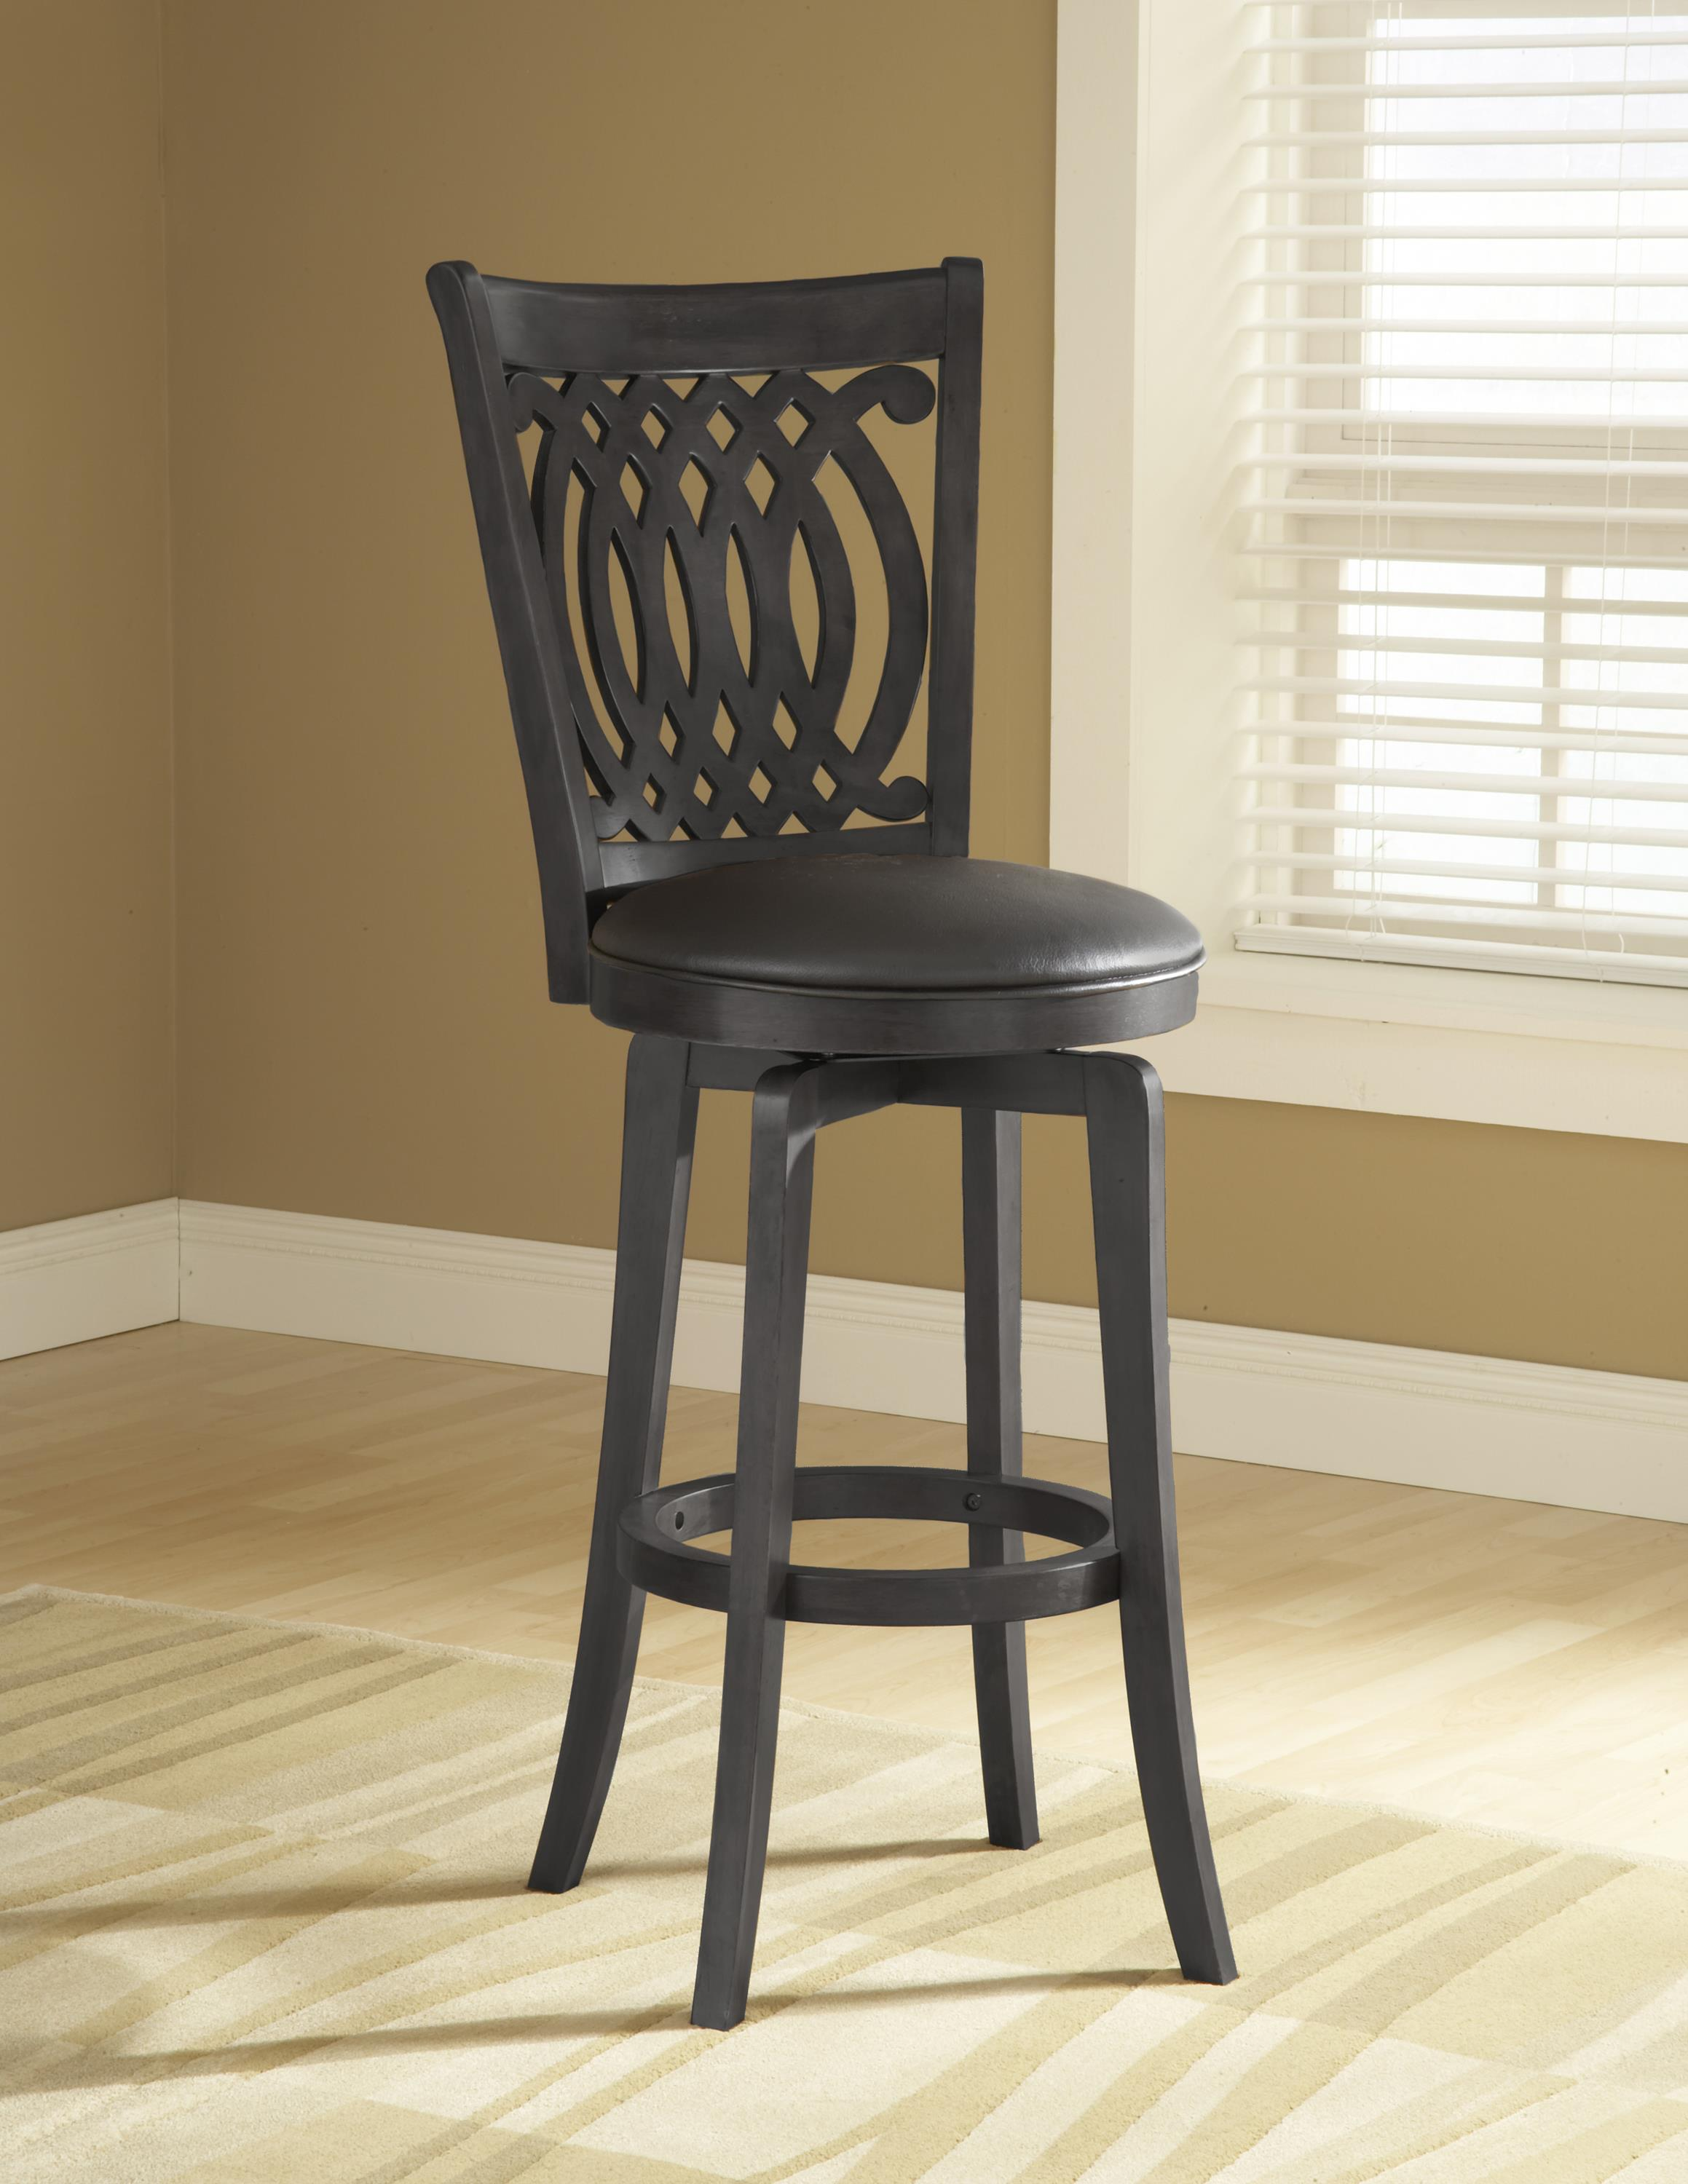 Hillsdale Metal Stools Van Draus Swivel Counter Stool - Item Number: 4975-827